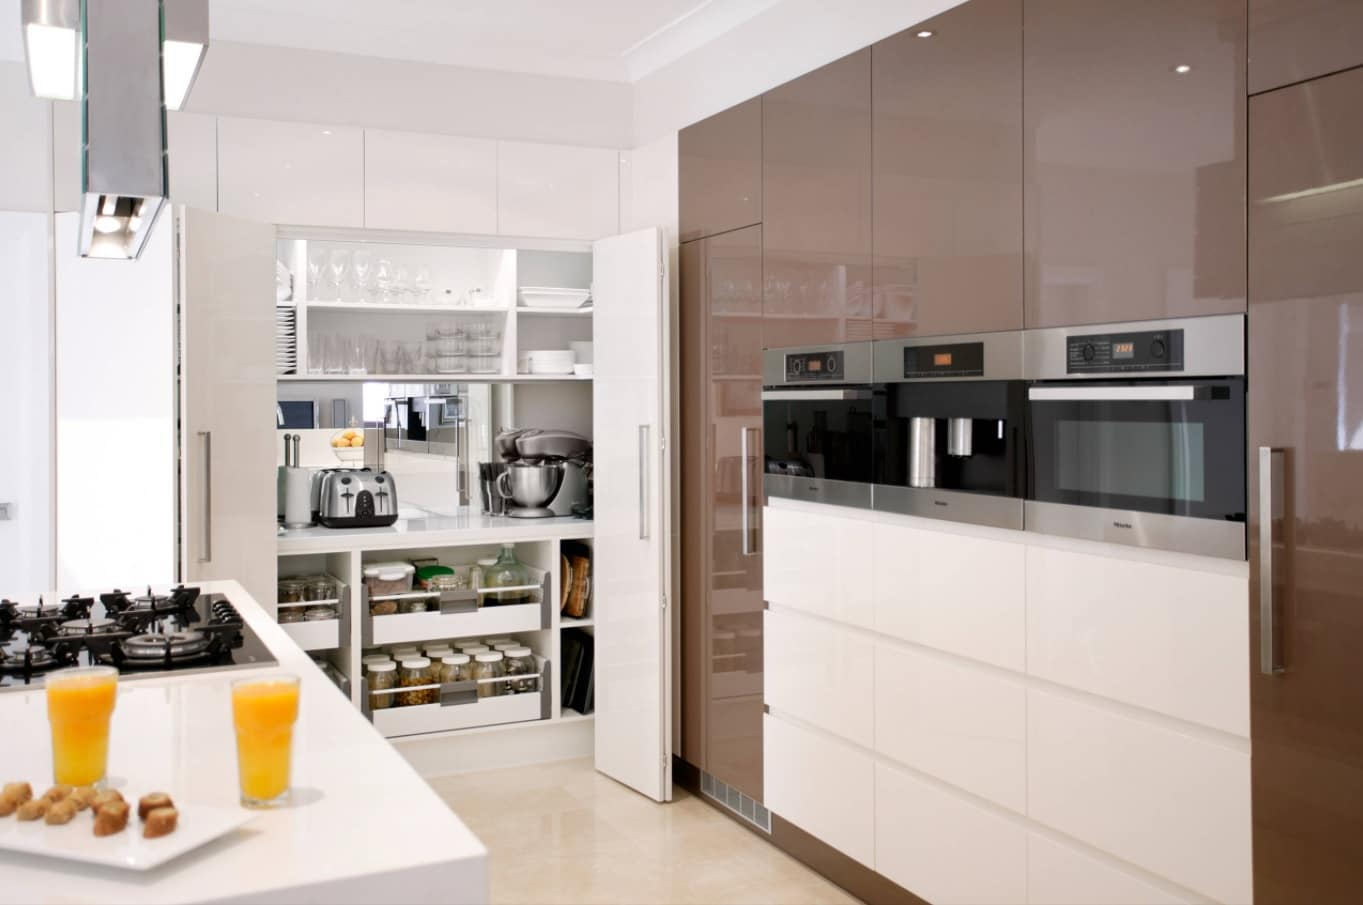 How to Make Your Kitchen Look more Expensive. Brown chocolate color and glossy surfaces along with hidden storage space for cookware